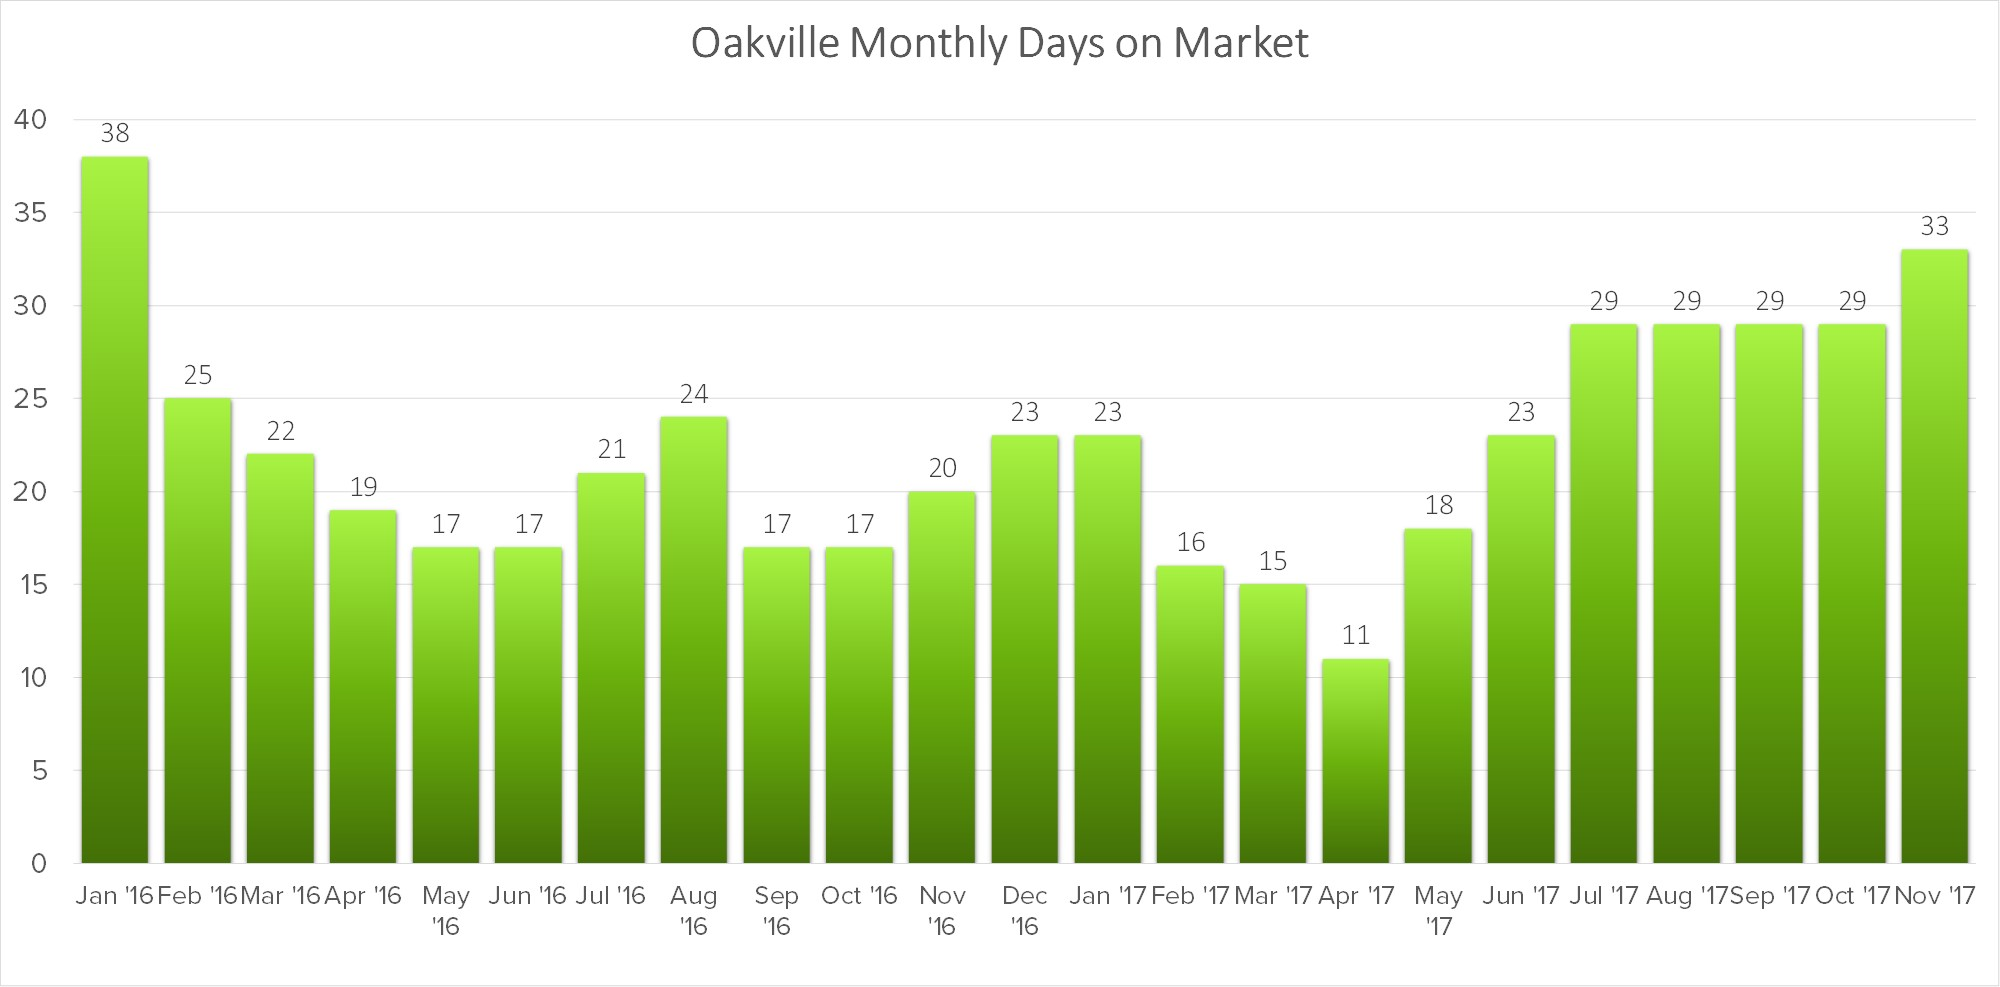 oakville-monthly-days-on-market.jpg